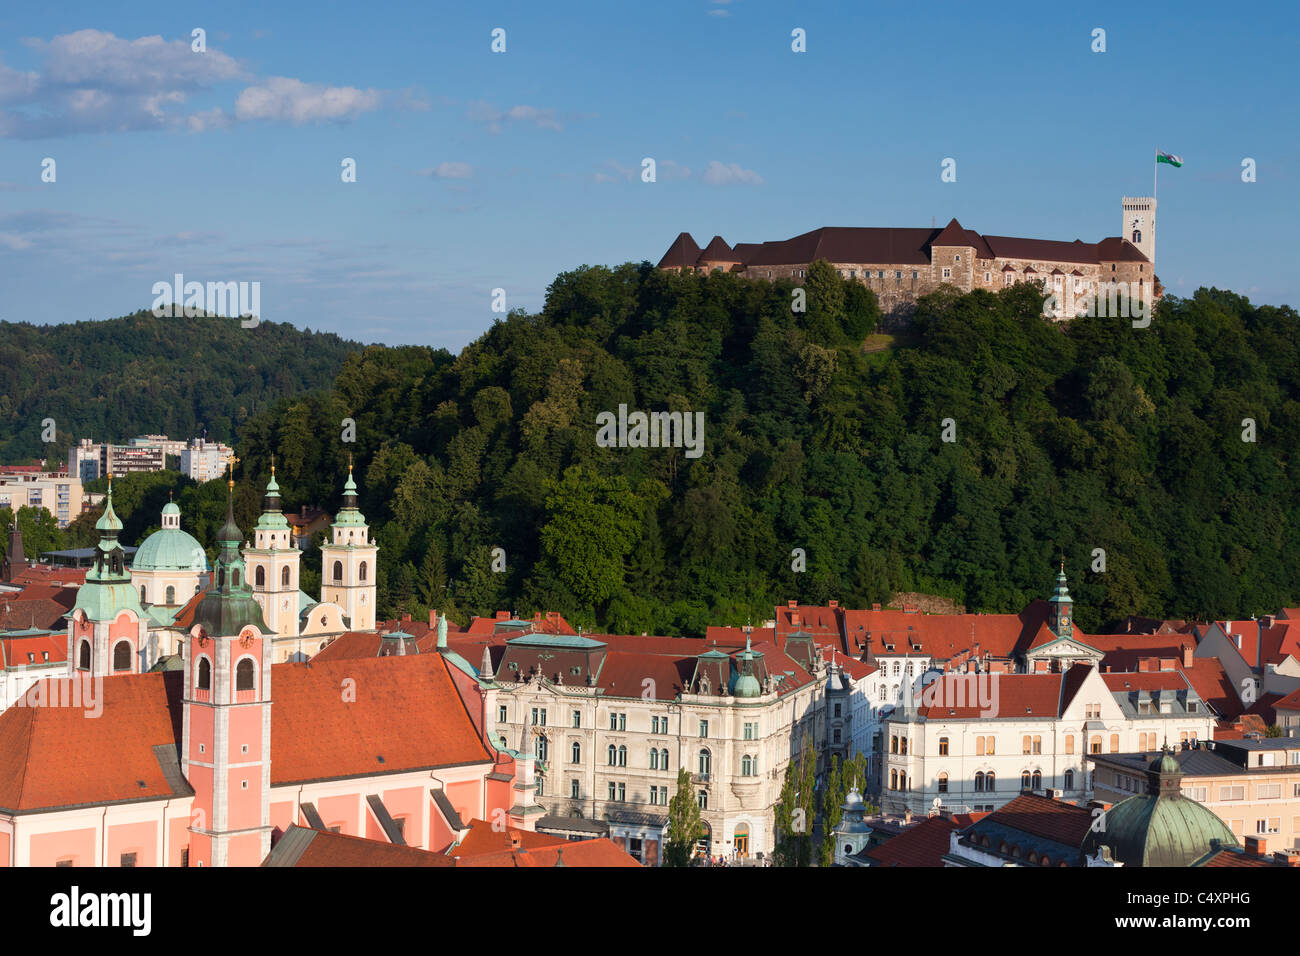 Ljubljana Castle, Slovenia, with the old town of Ljubljana below it. - Stock Image